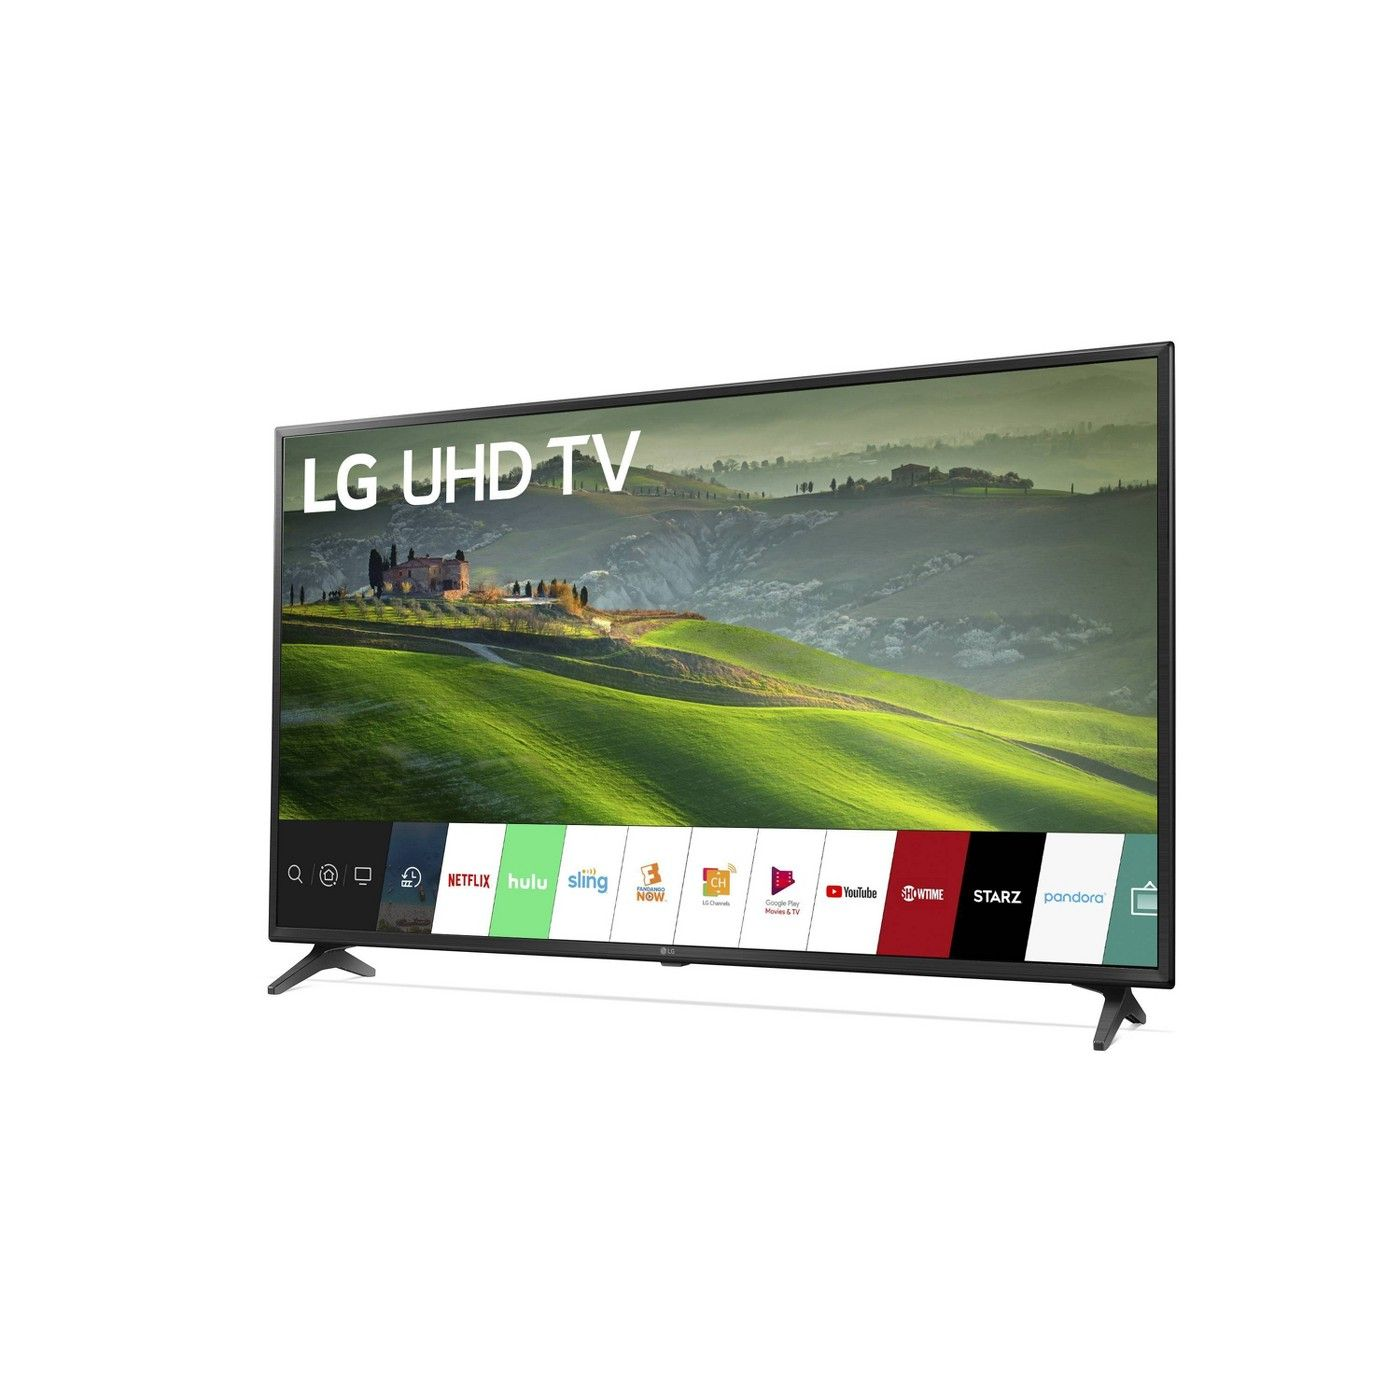 Lg 60 Class 4k Uhd Smart Led Hdr Tv In 2020 Alexa Device Uhd Tv Streaming Content